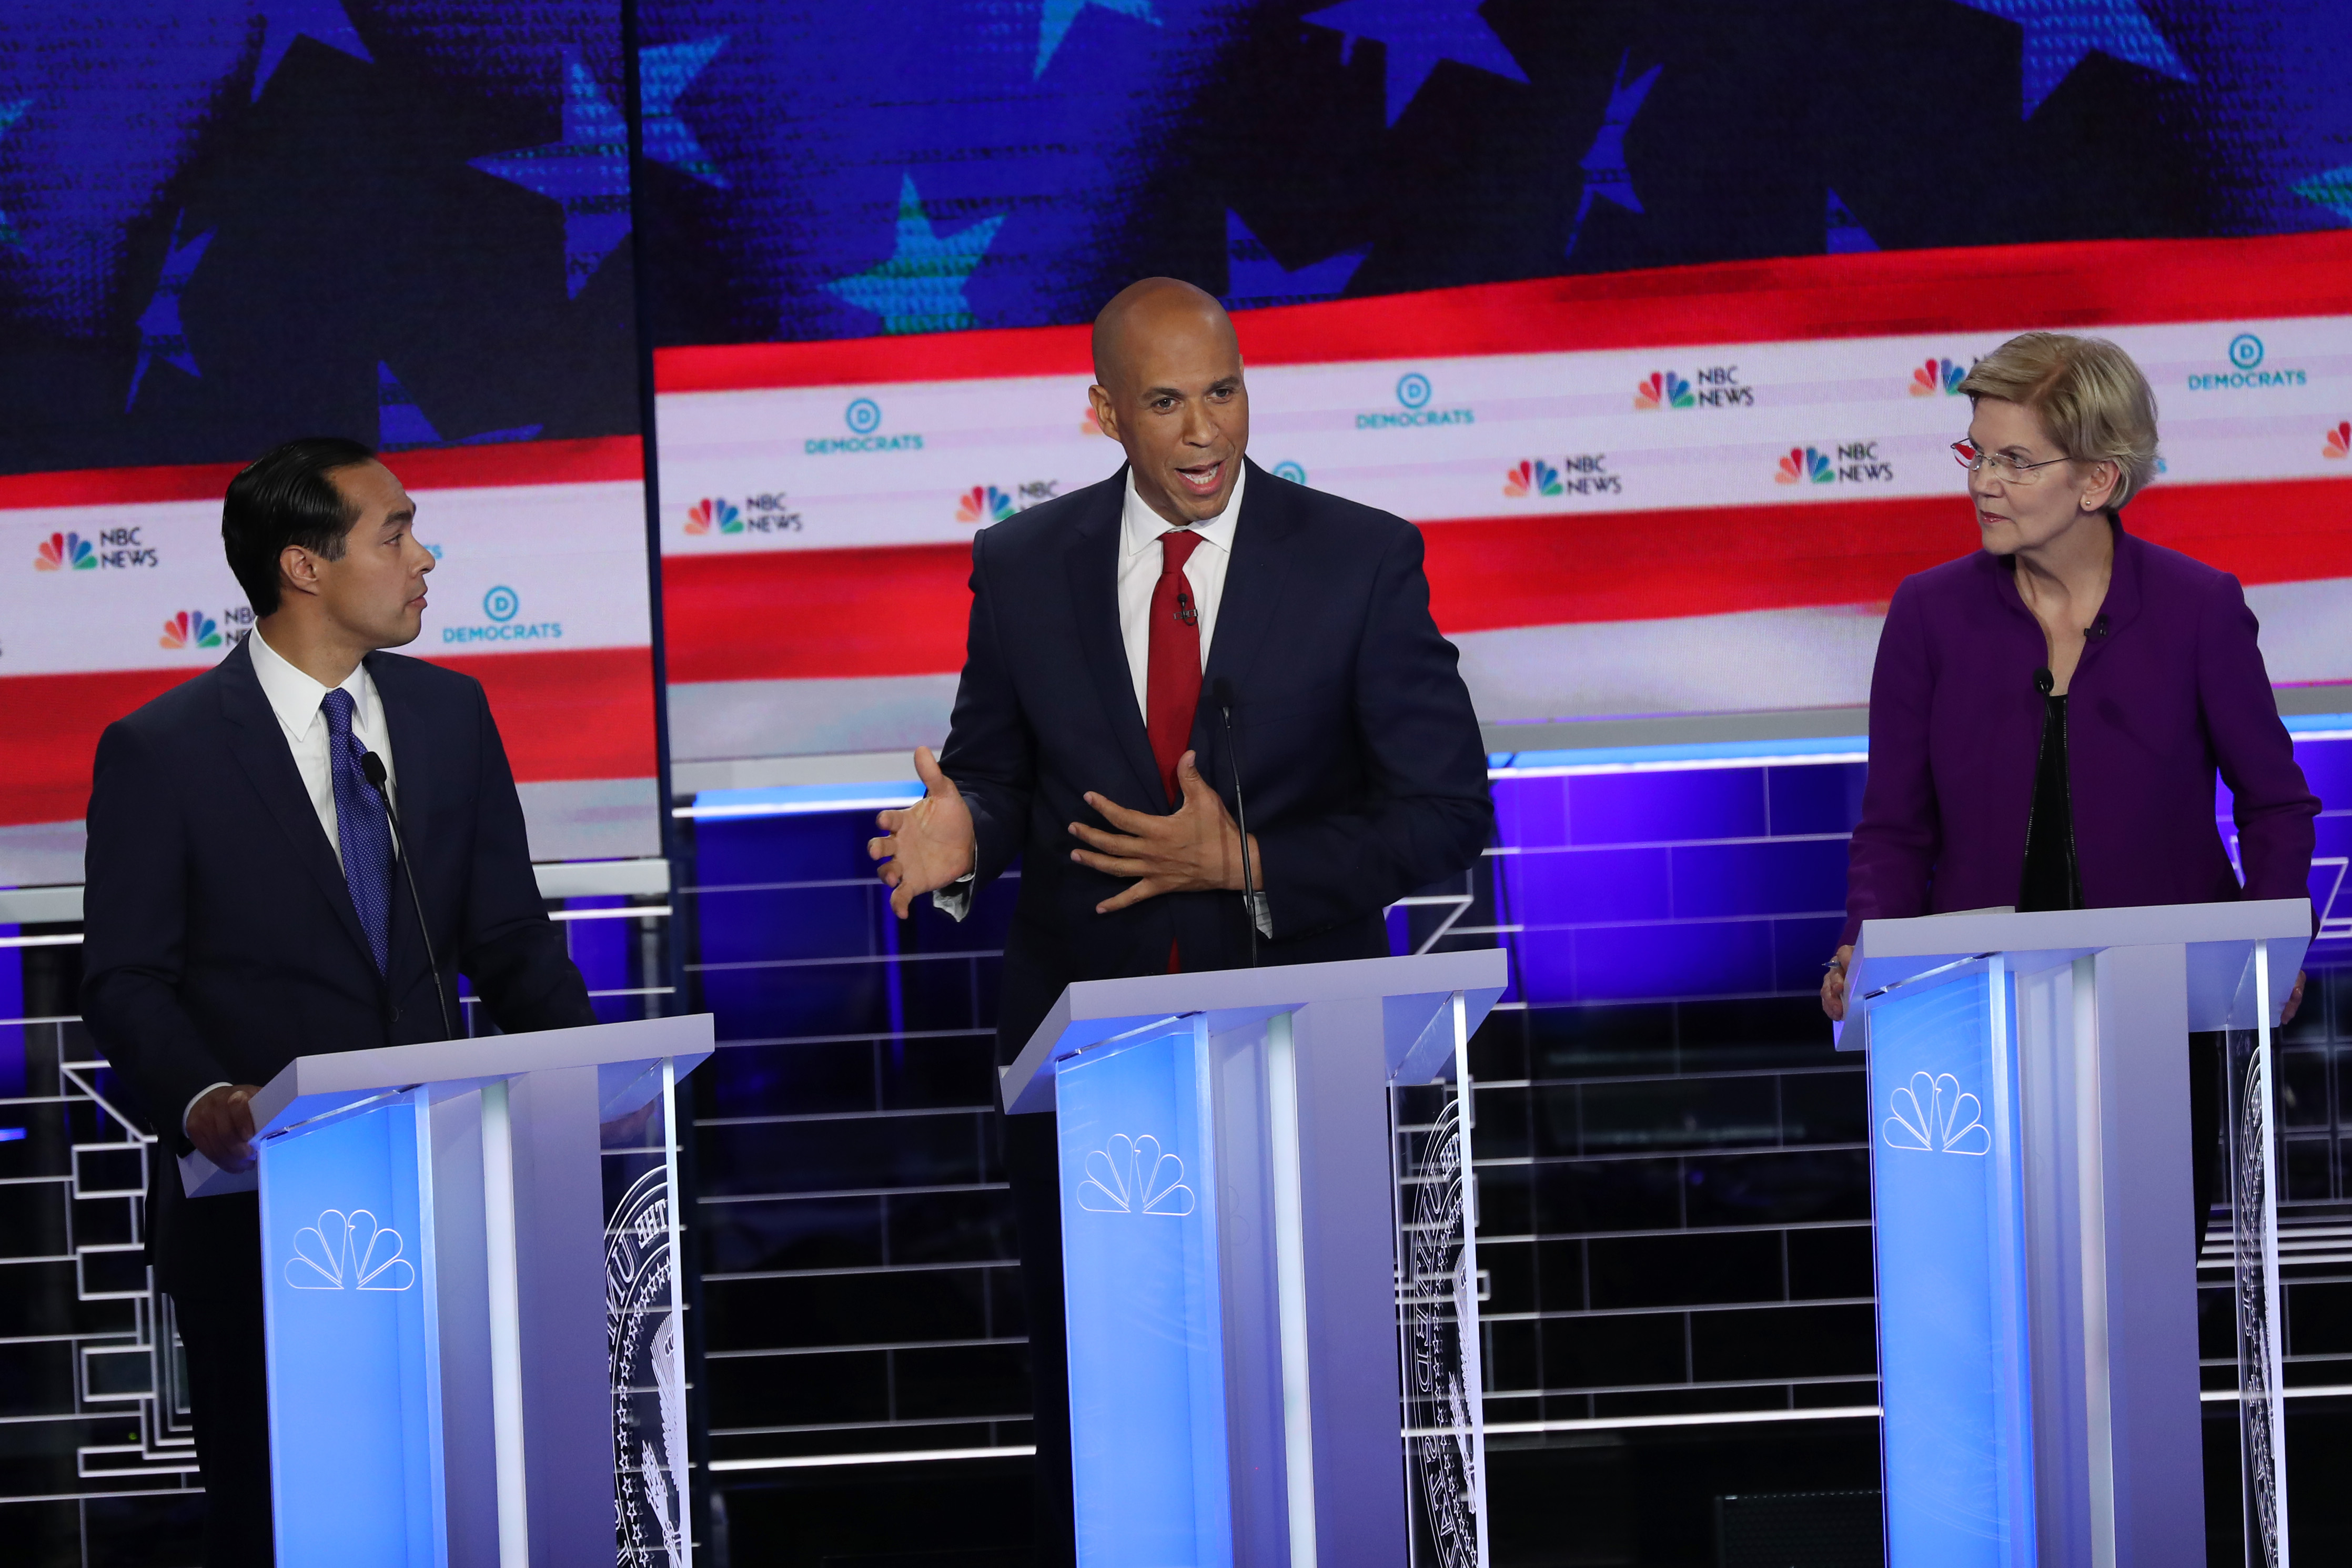 Democrats didn't talk enough about racism in their first primary debate